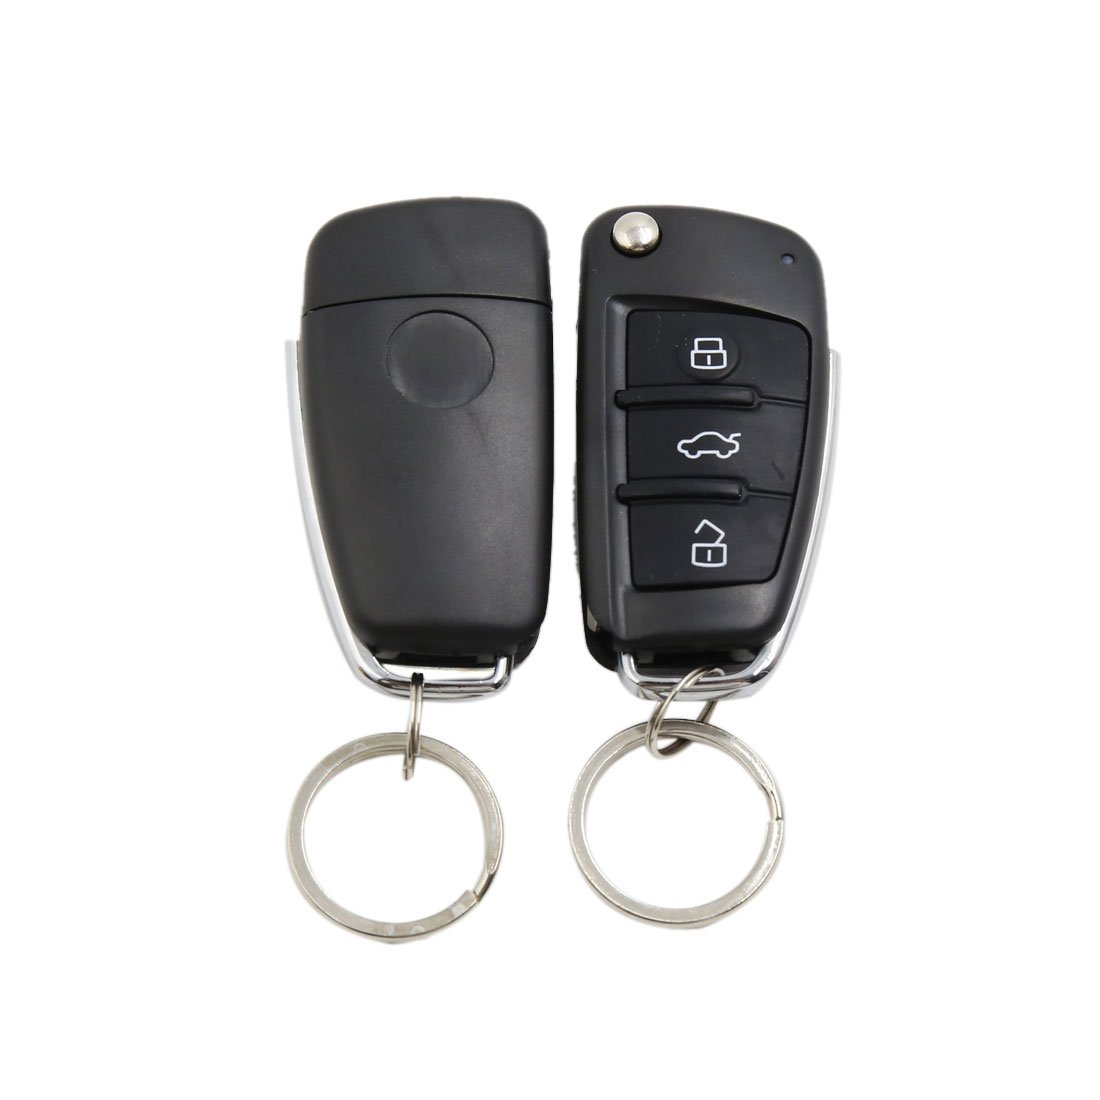 Uxcell Car Alarm System Auto Remote Central Kit Door 1998 Toyota 4runner Wiring Diagram Free Picture Lock Vehicle Keyless Entry Automotive